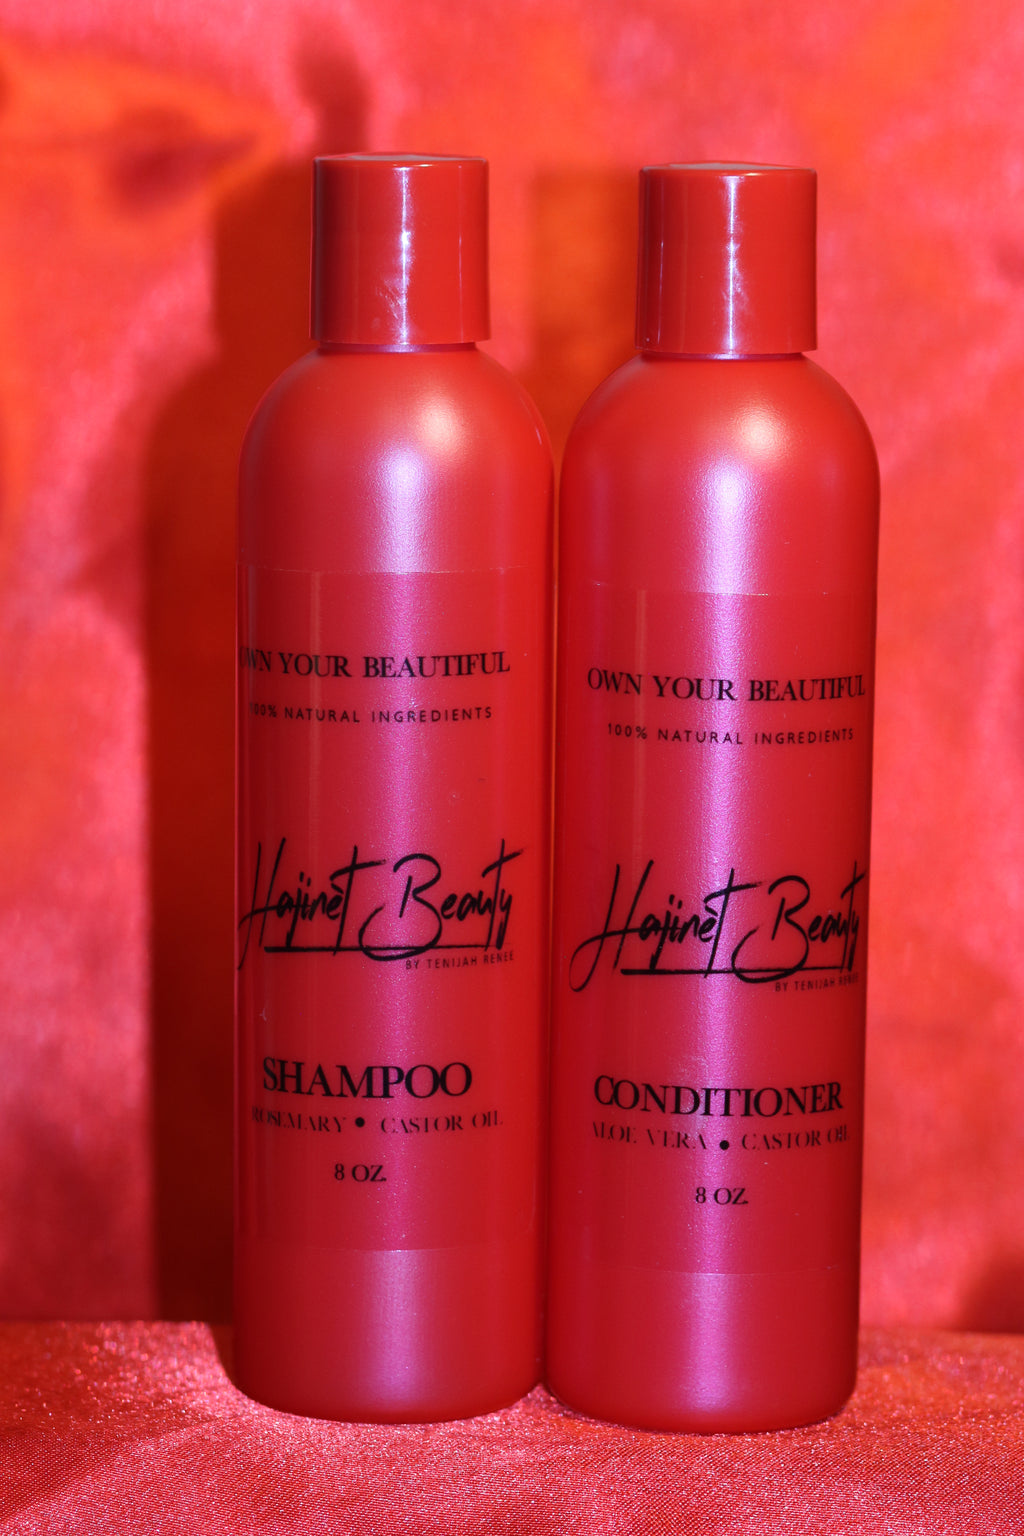 Hajinet Beauty Shampoo and Conditioner